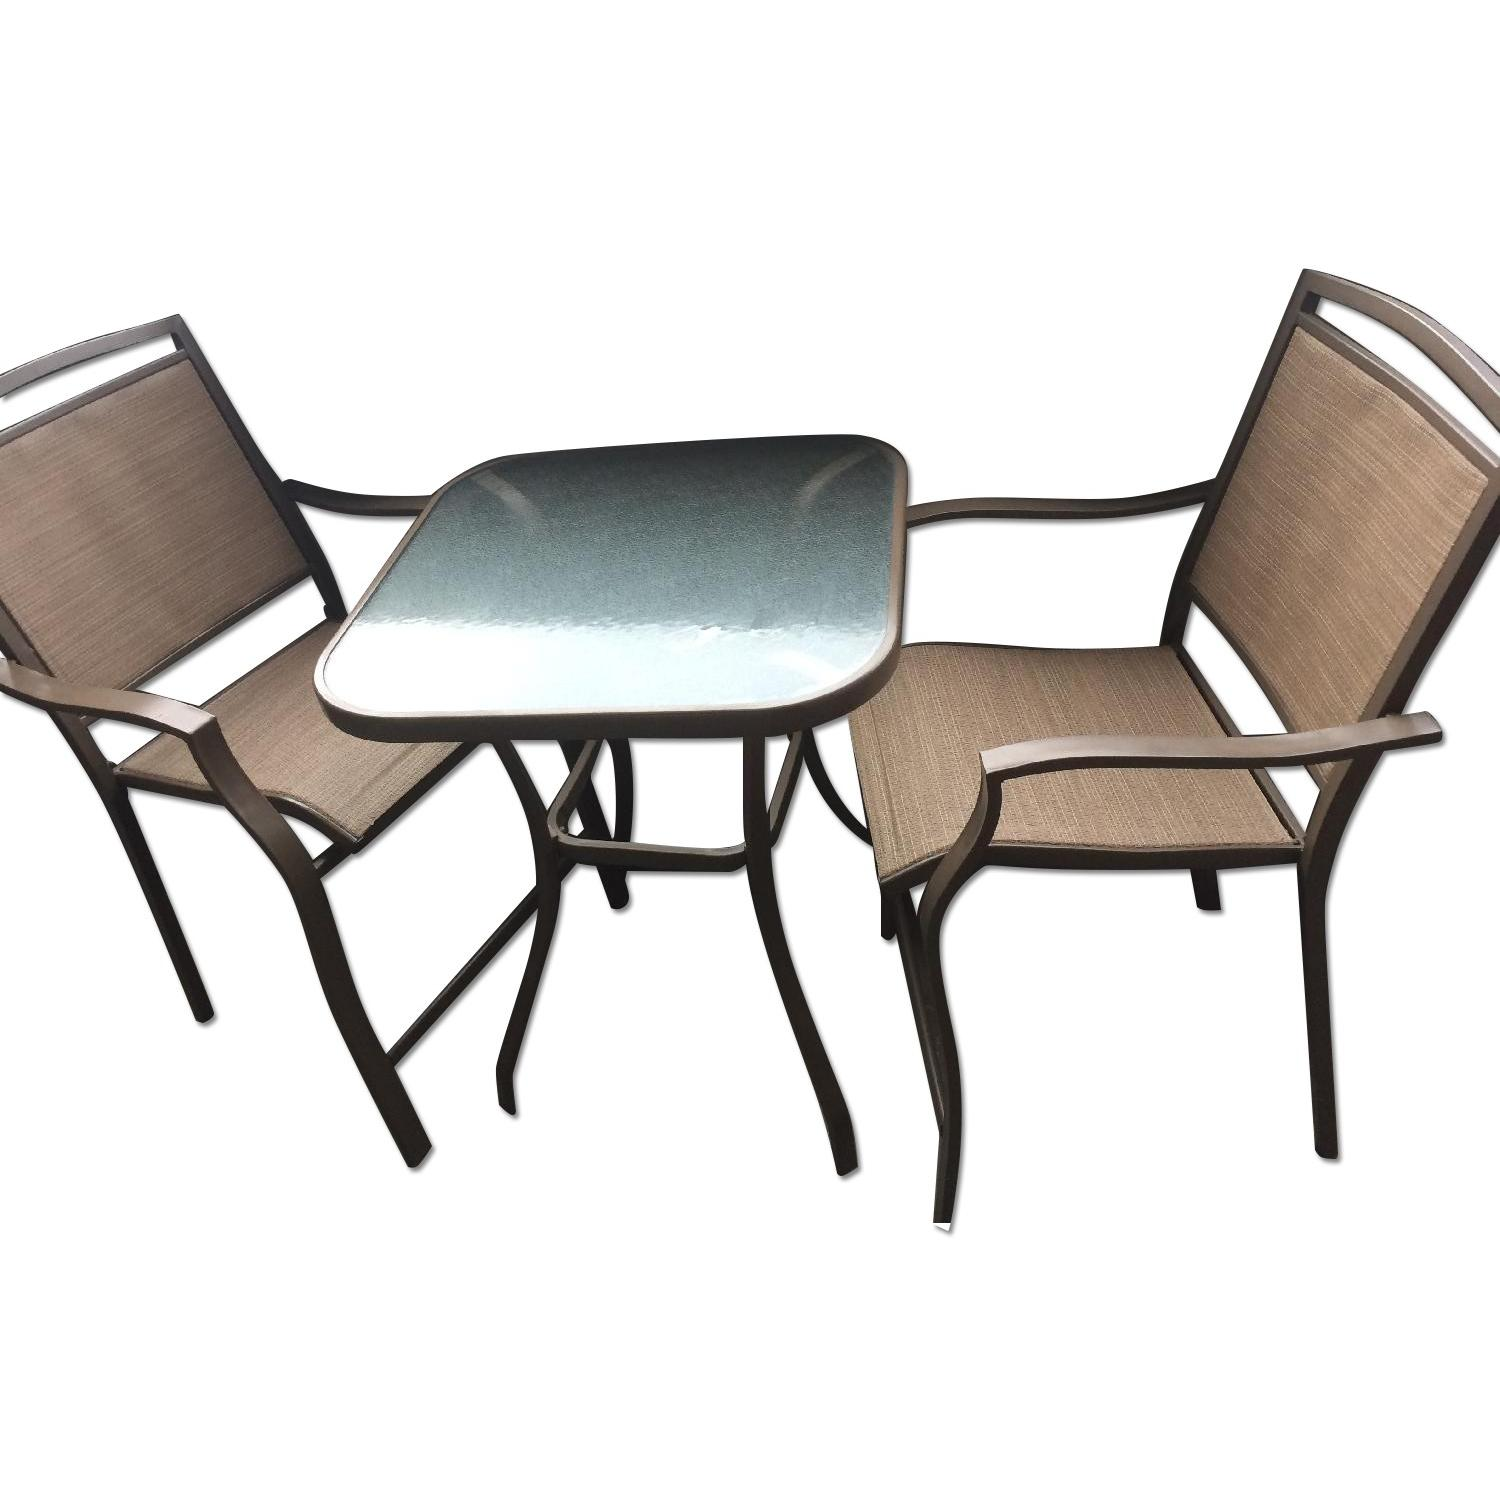 Patio Bar Table w/ 2 Chairs - image-0